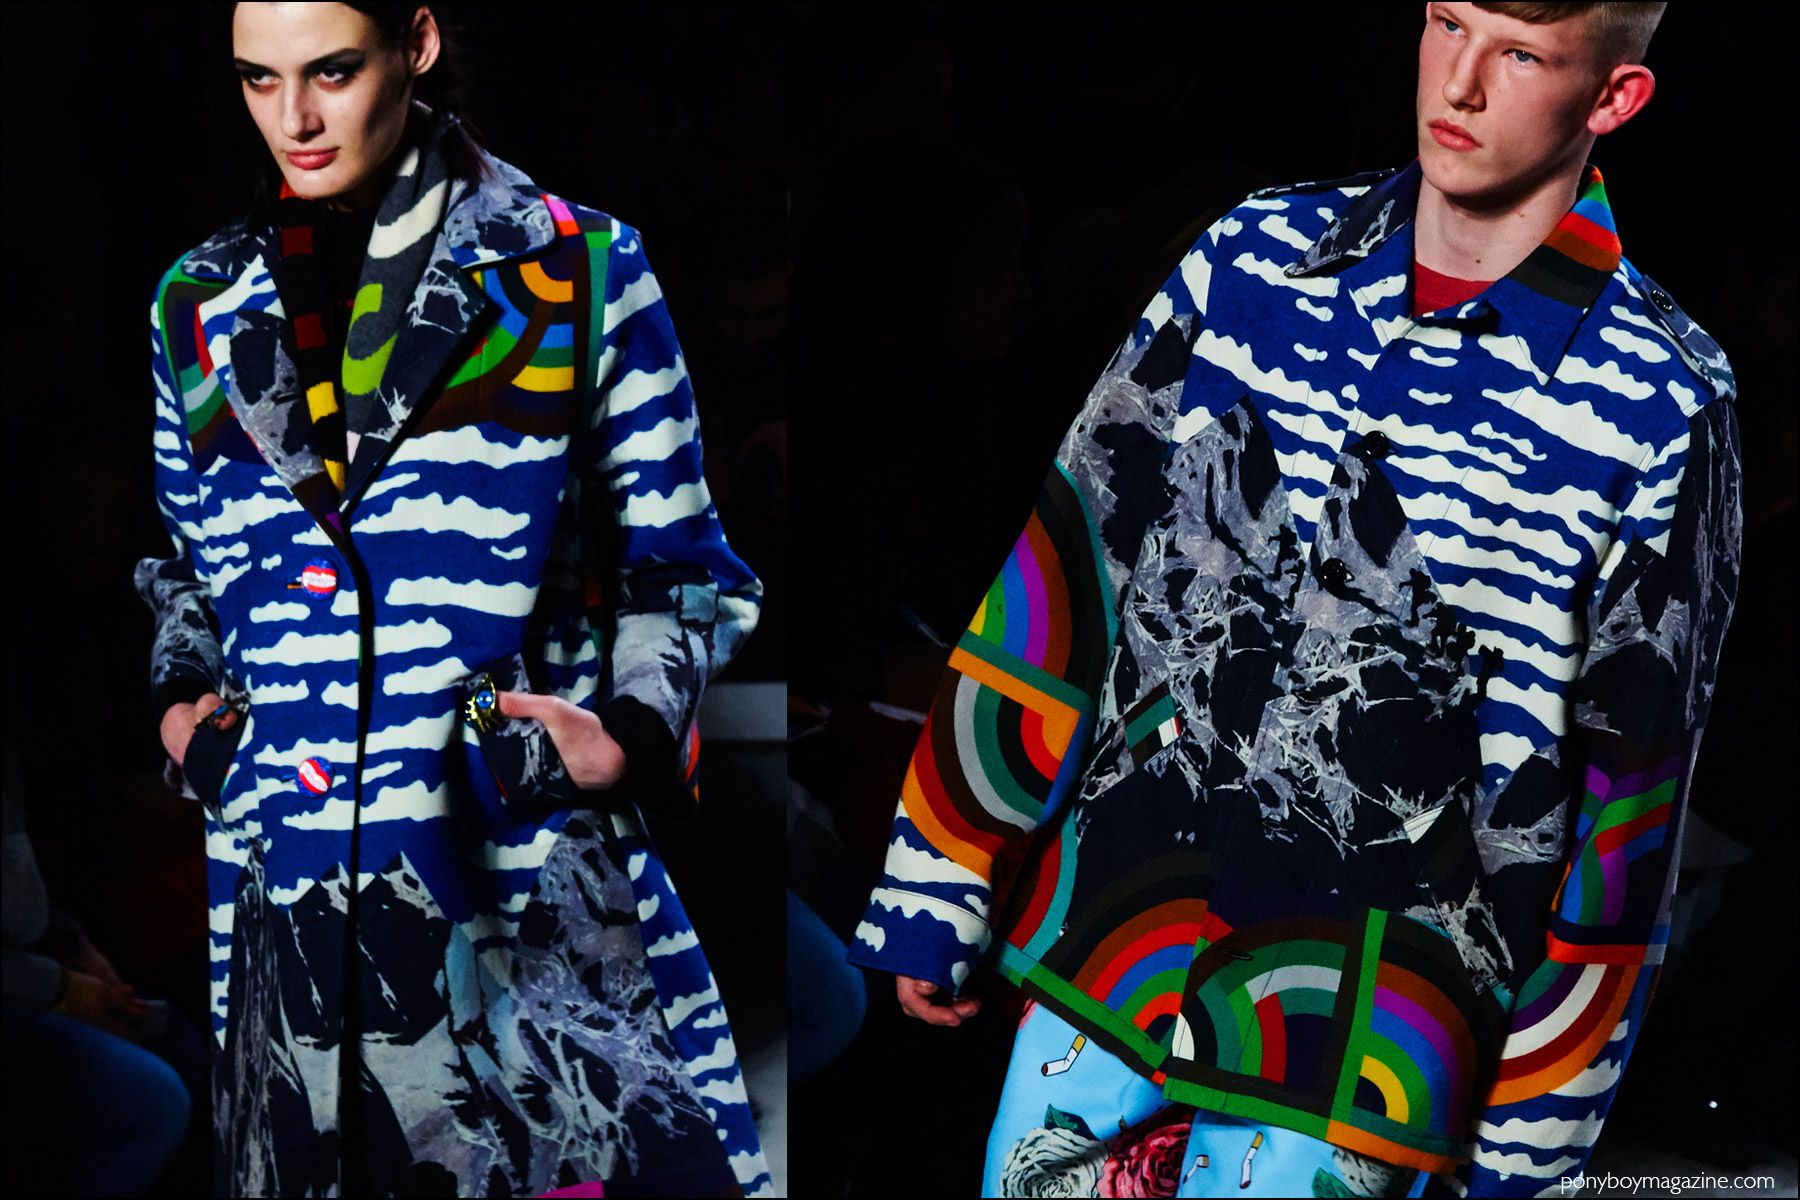 Vivid colorful prints on the runway at Libertine for Fall/Winter 2016. Photography by Alexander Thompson for Ponyboy magazine NY.